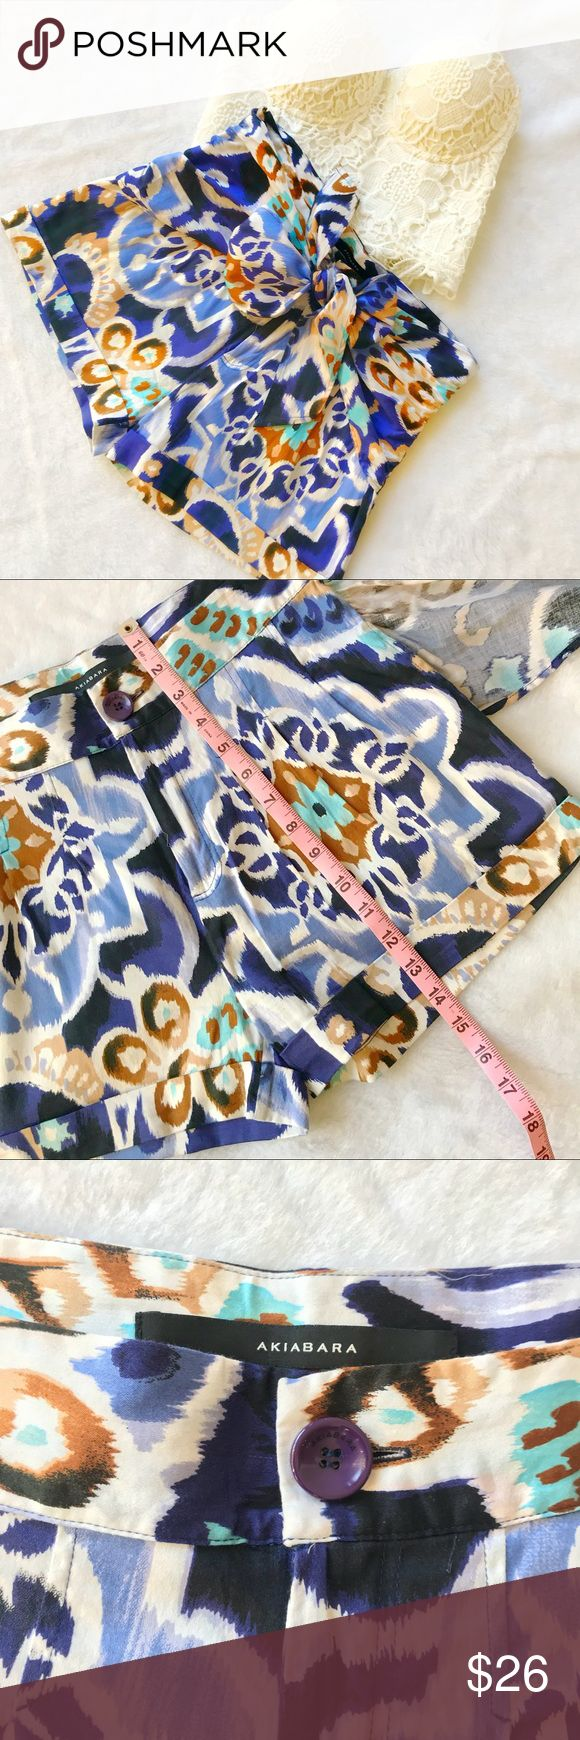 """Blue Print Shorts With Sash Abstract all around floral print. Functional pockets and sash that can be tied into a bow. Argentinian brand Akiabara. Size one, fits like small. Waist approx 15"""" flat. Gently used item in excellent condition. Akiabara Shorts Skorts"""